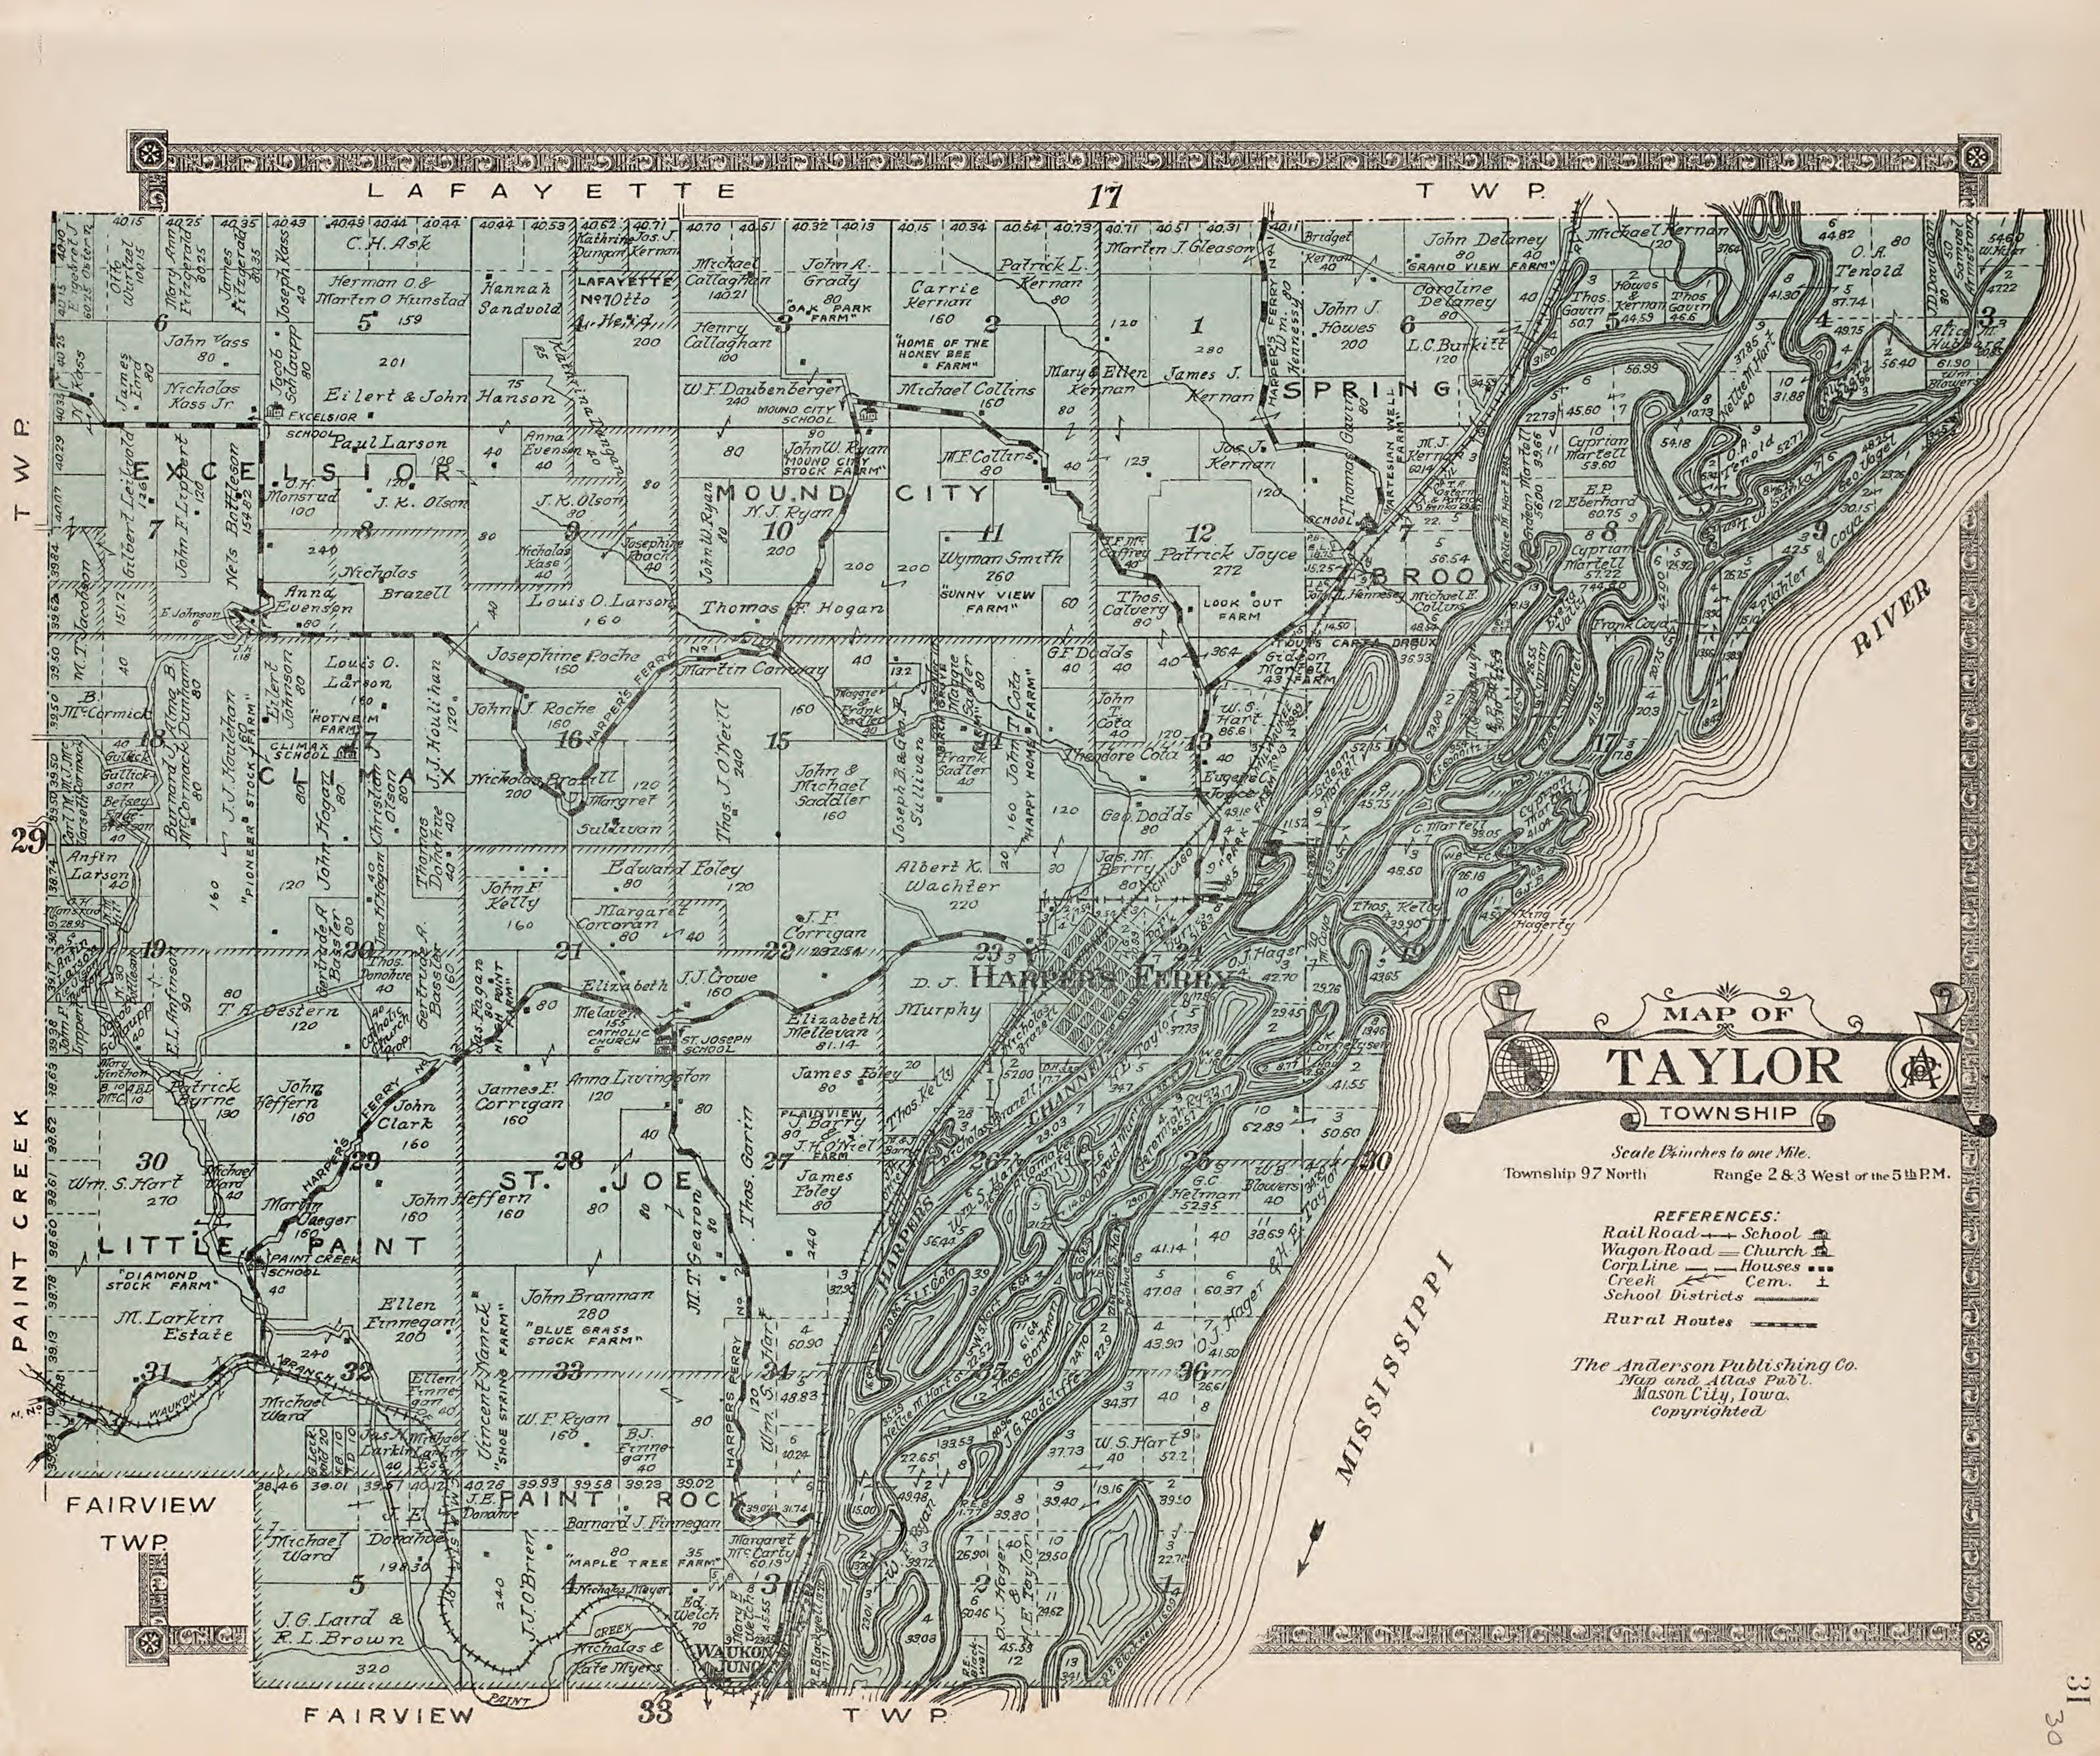 File:Atlas of Allamakee County, Iowa - containing maps of townships on